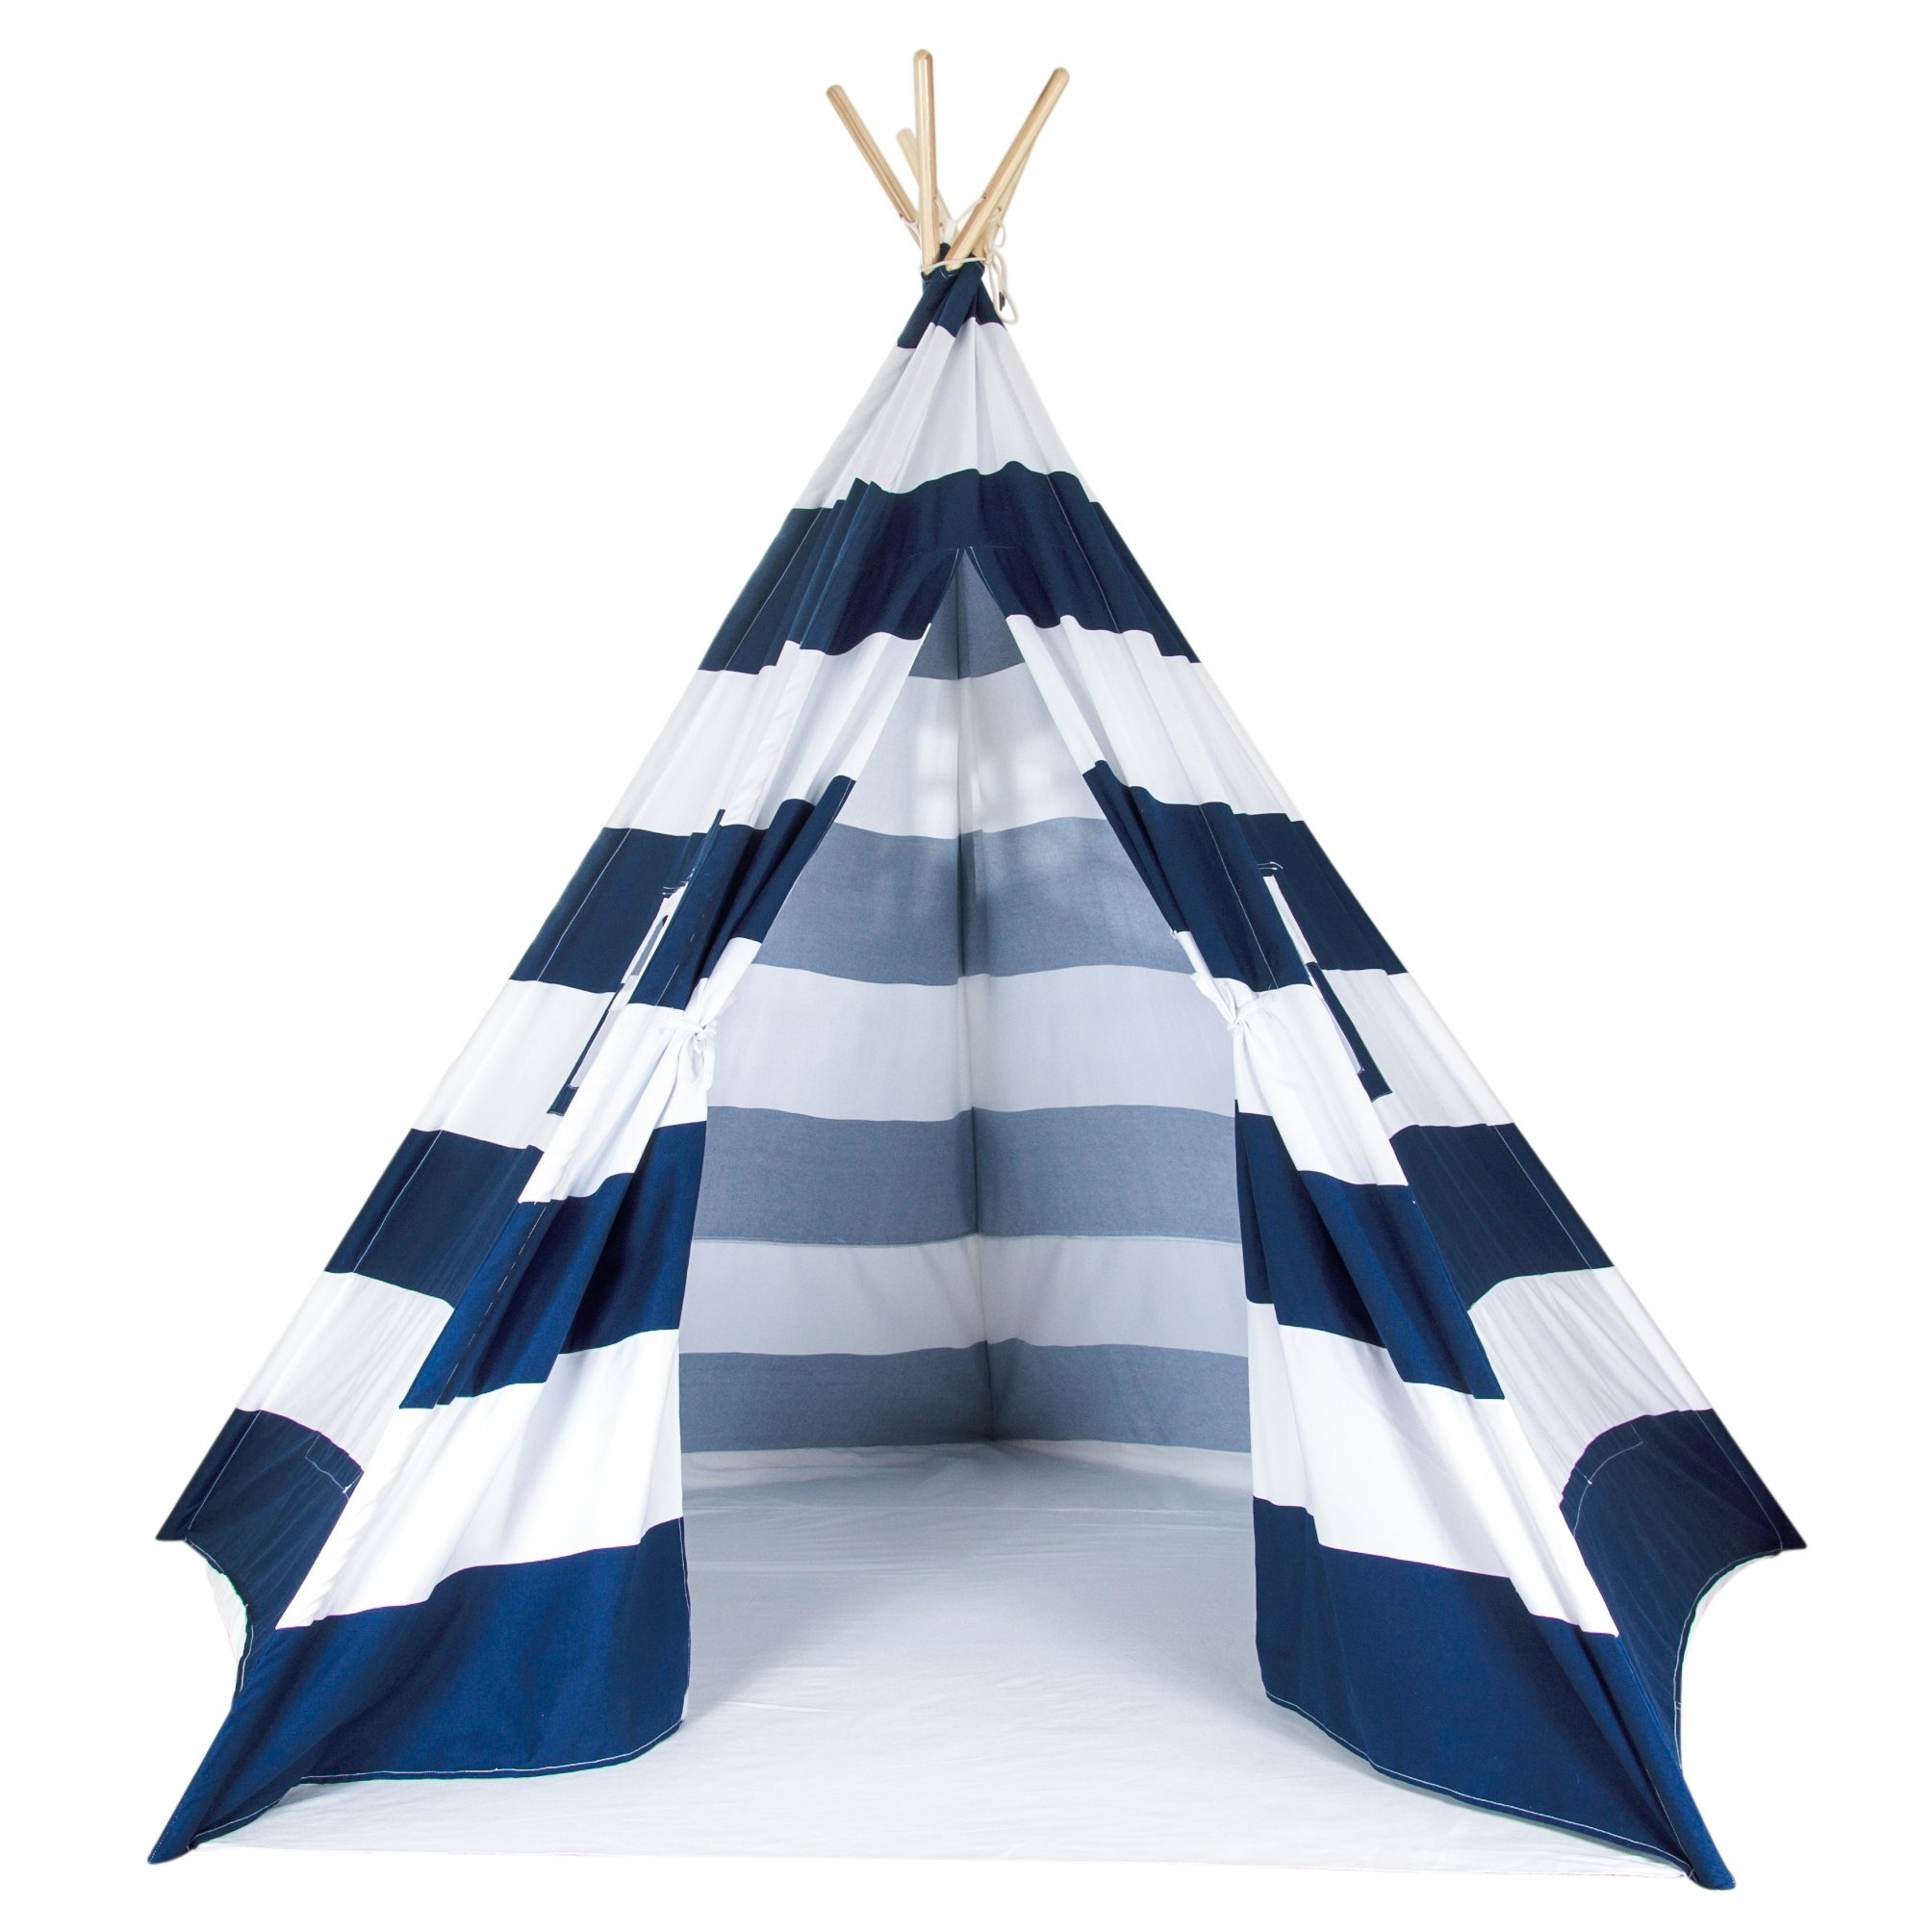 Large Kids Teepee Tent, Big Enough for the Whole Family, Portable Canvas Tent with Carrying Case, No Extra Chemicals (Navy)